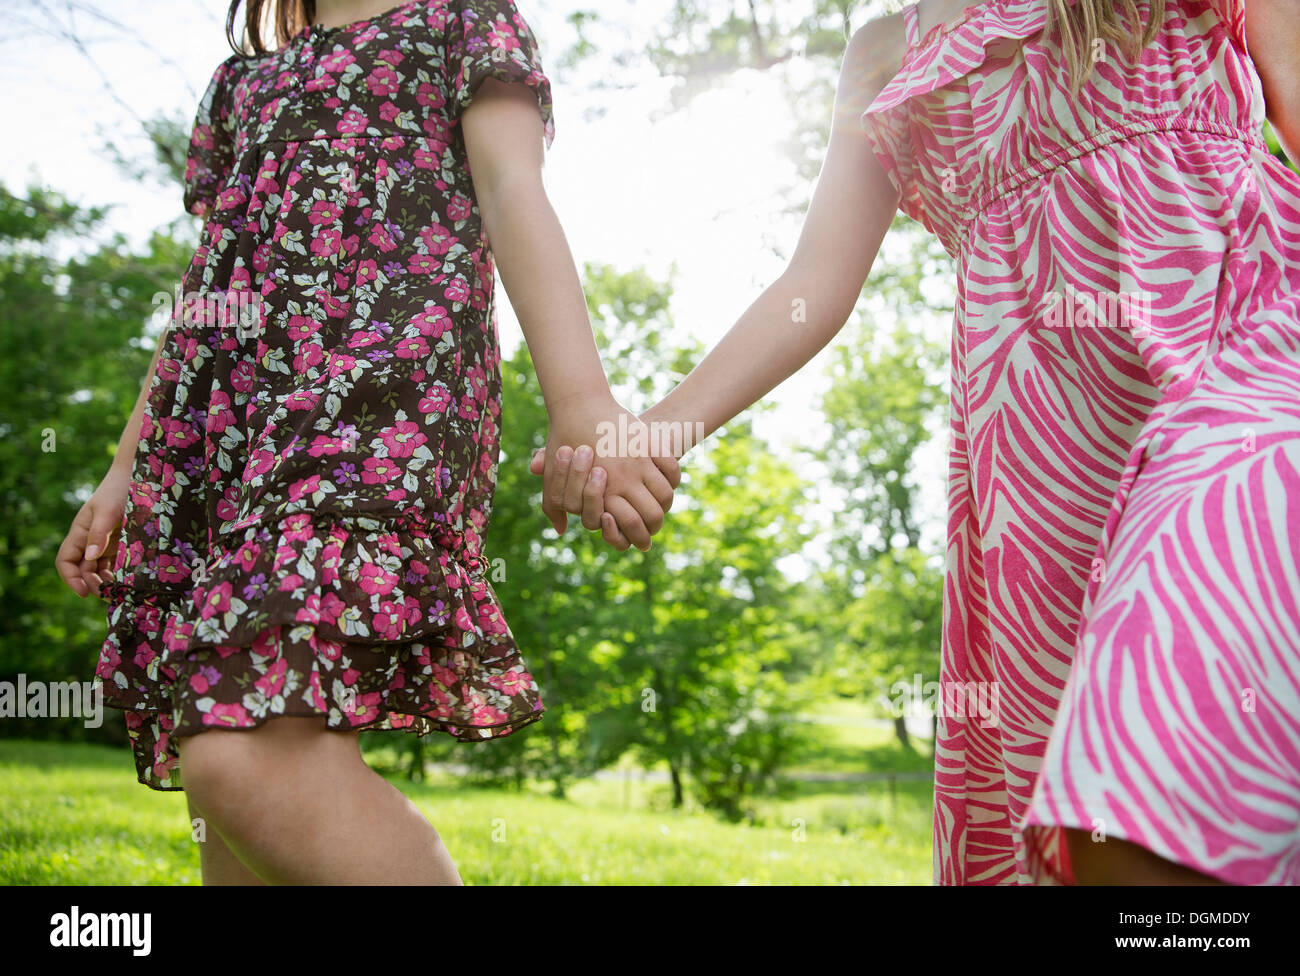 A summer family gathering at a farm. Two children holding hands and running across the grass. - Stock Image